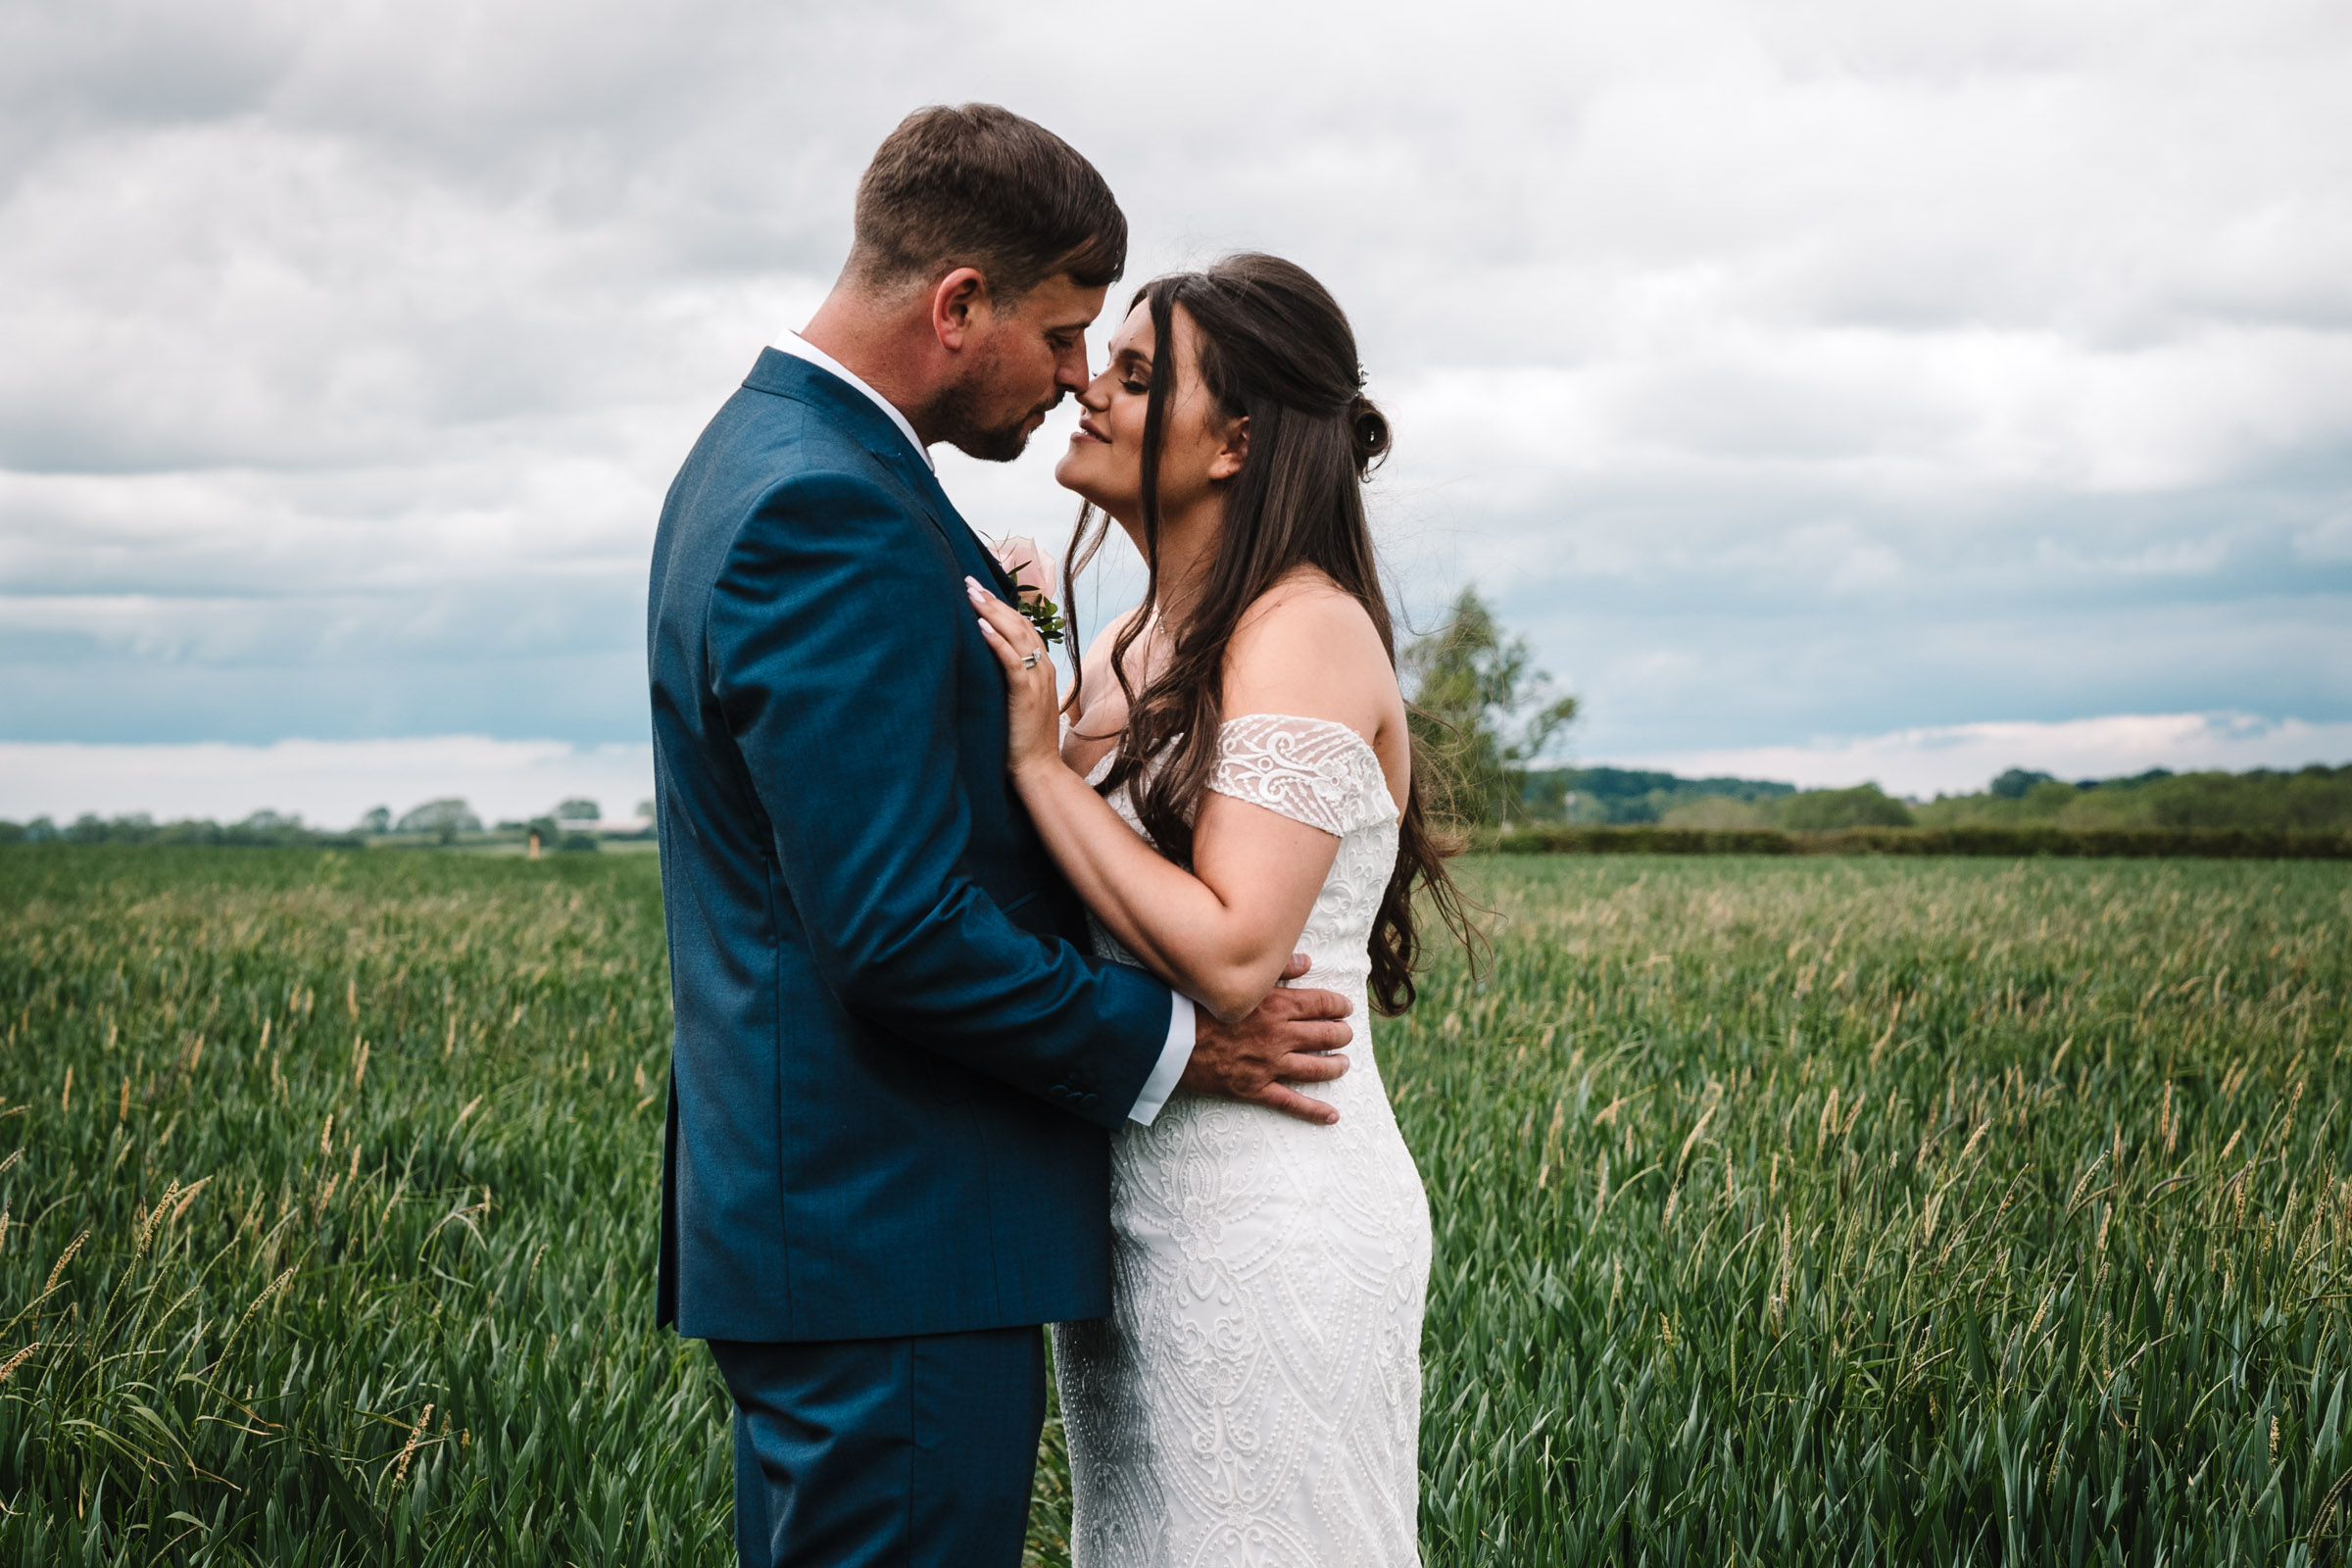 bride and groom holding each other close in field, royal arms hotel